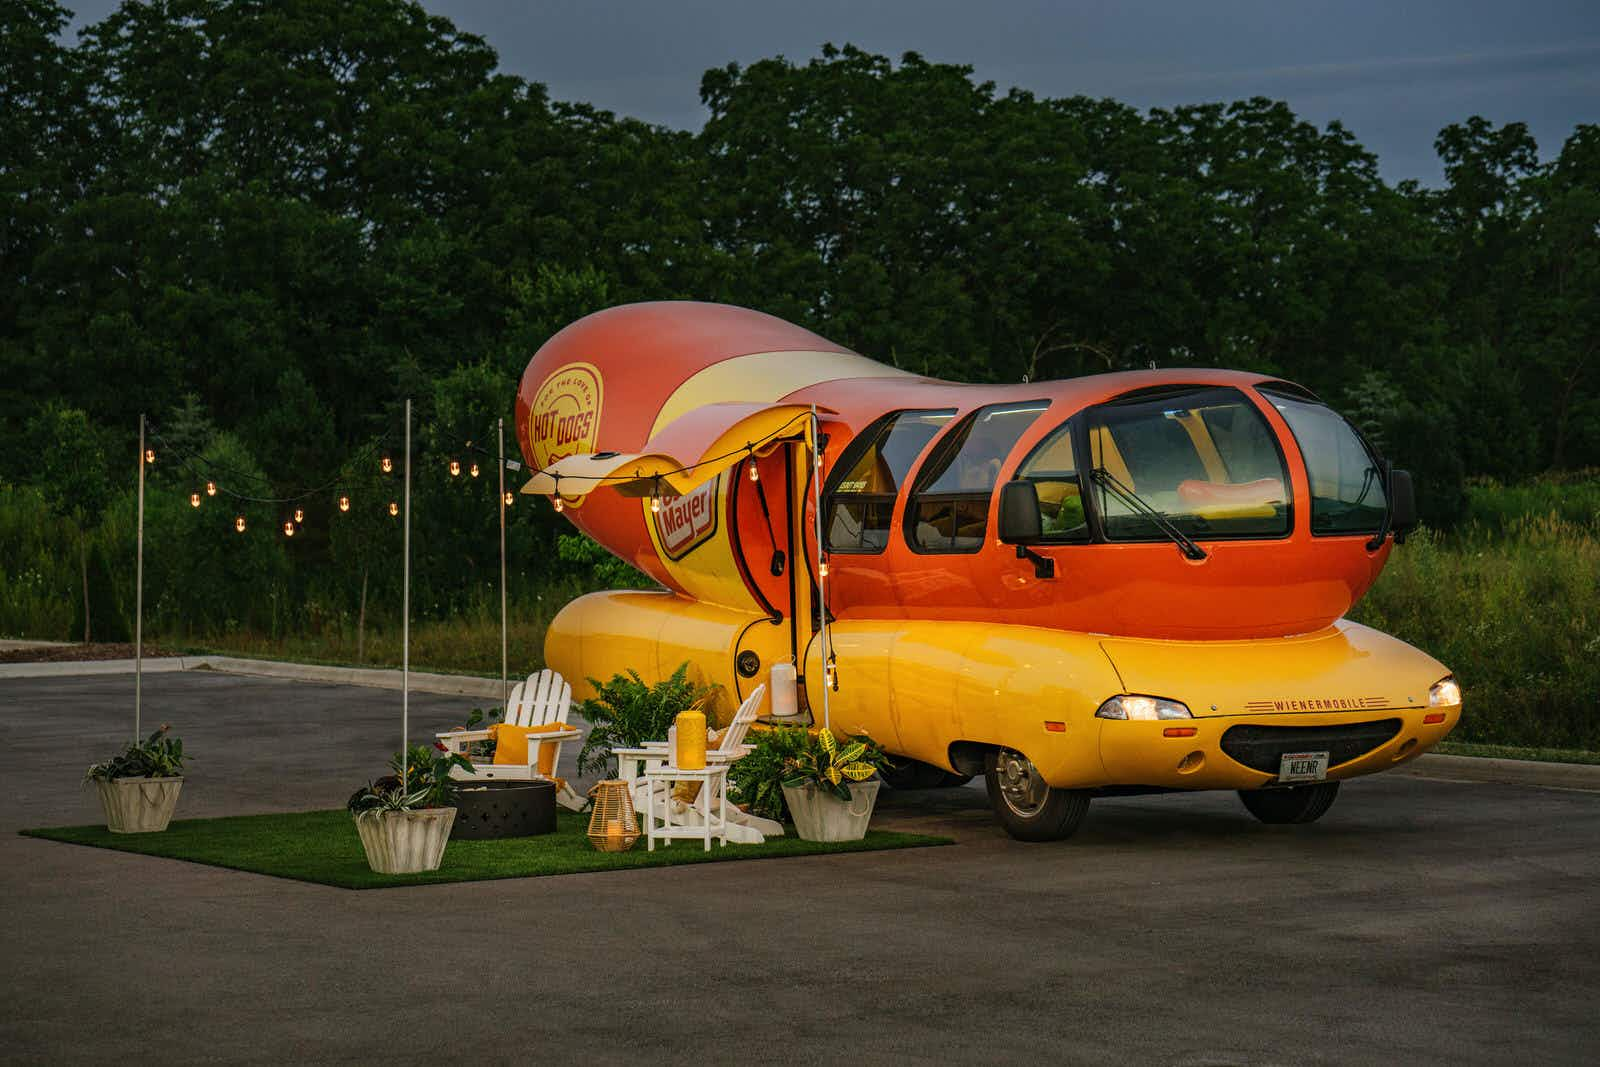 For one weekend in August, you can sleep inside a Wienermobile